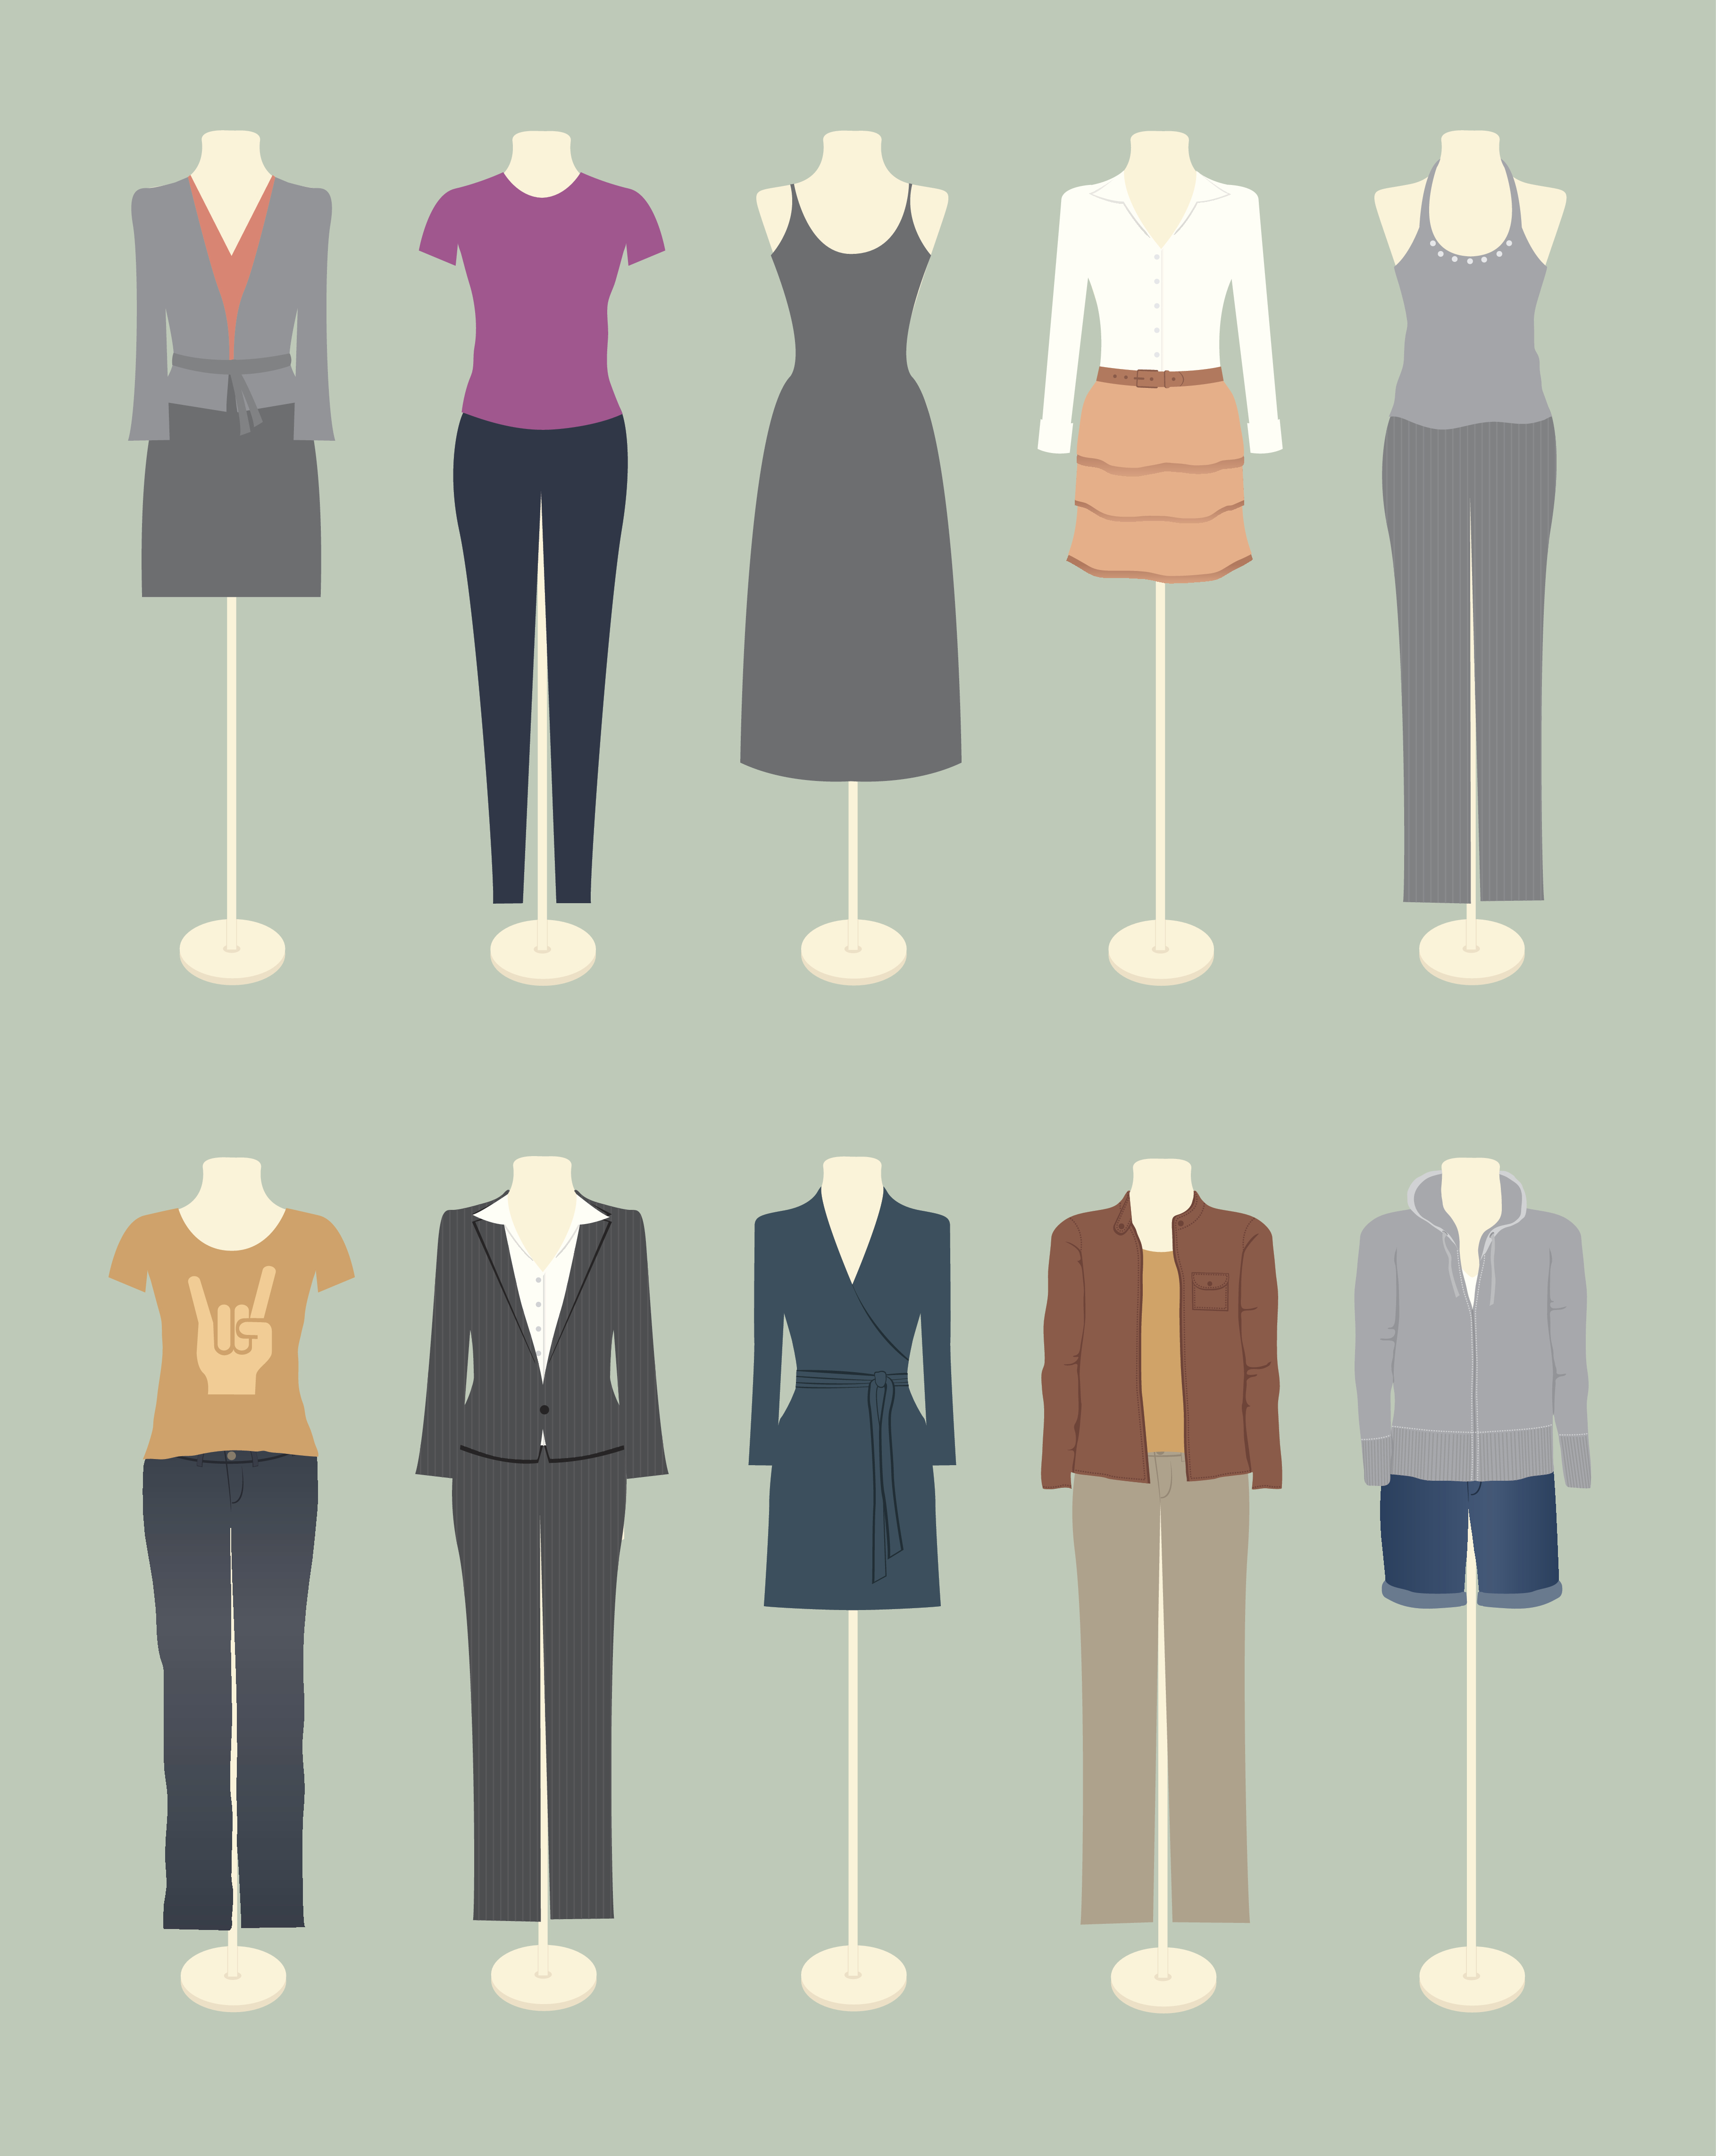 8 mannequins drawn on a green background in a variety of attire